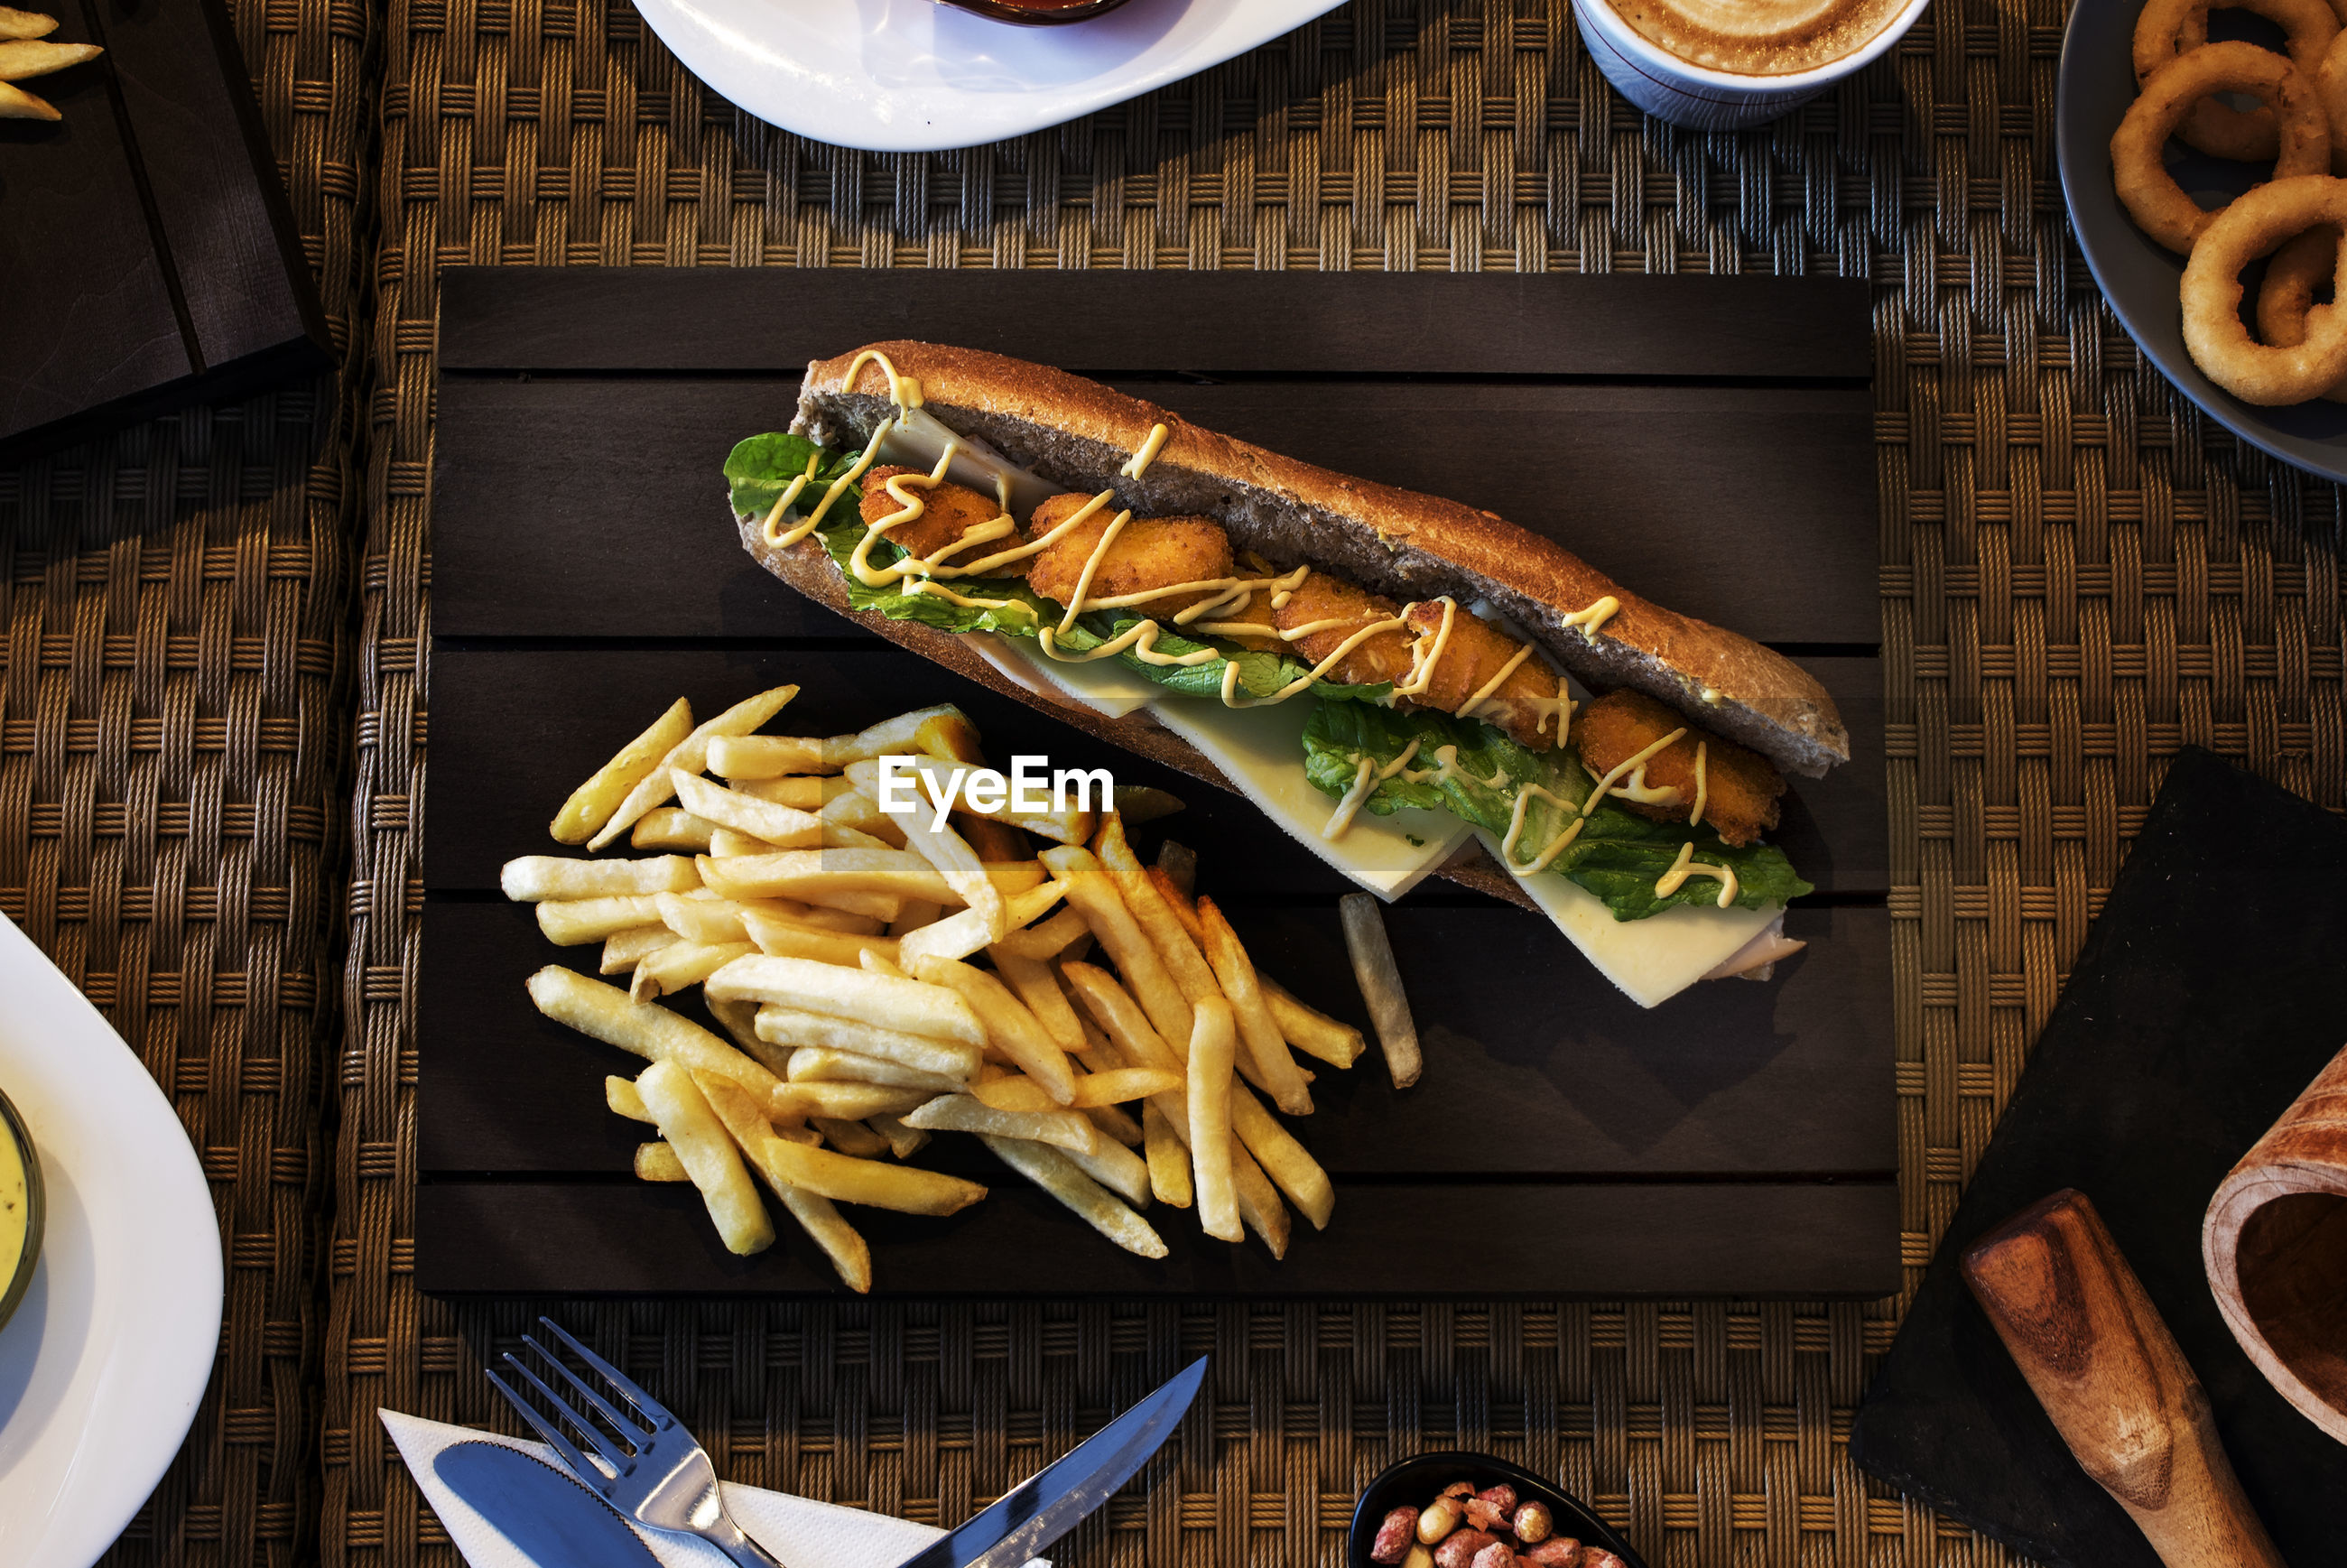 High angle view of sandwich and french fries on table